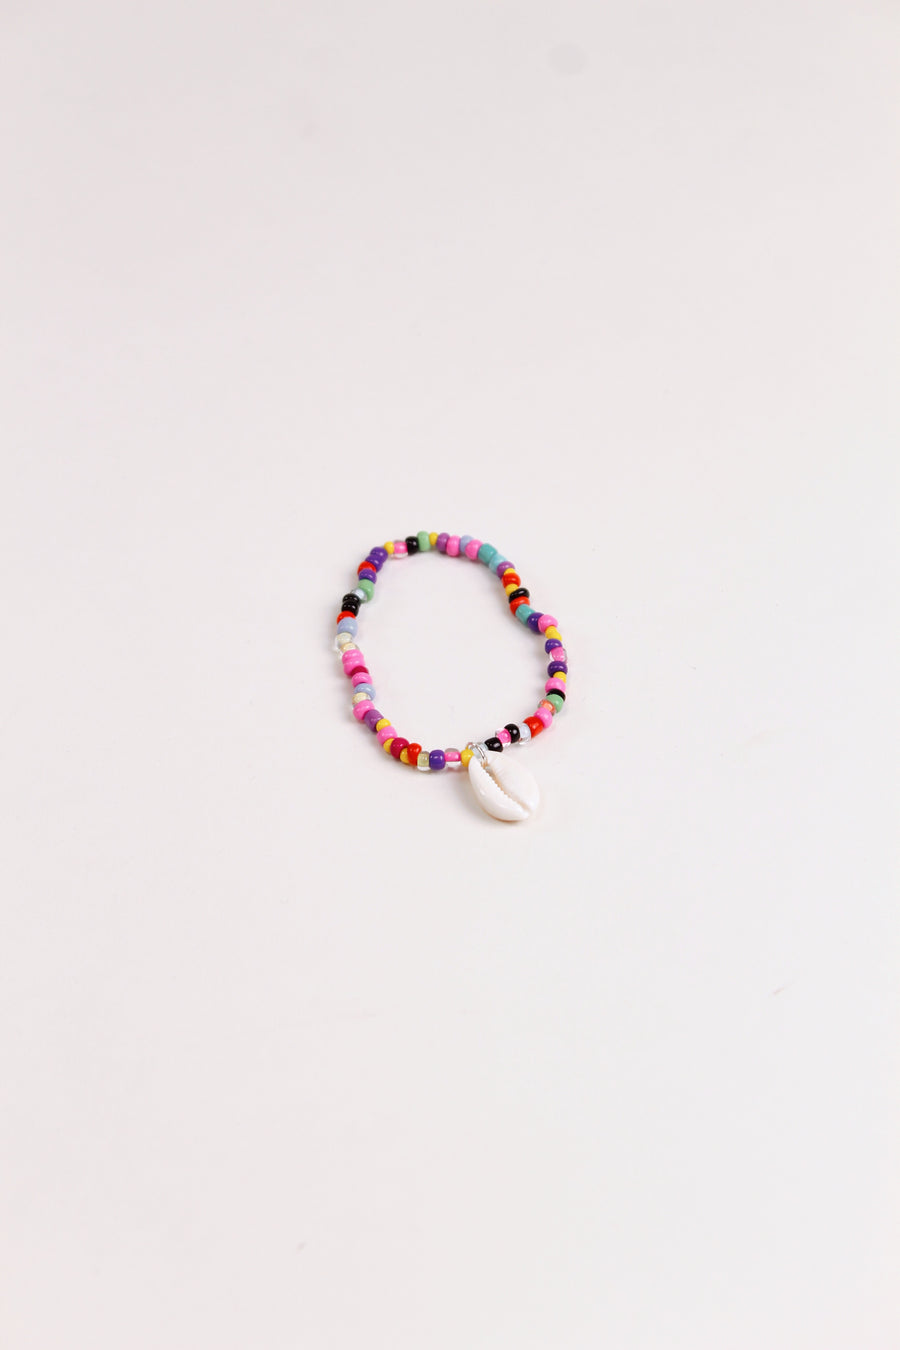 St. Lucia Beaded Rainbow Shell Anklet - The Beach Bride by Chic Parisien, a destination for beach weddings, bachelorettes and honeymoons